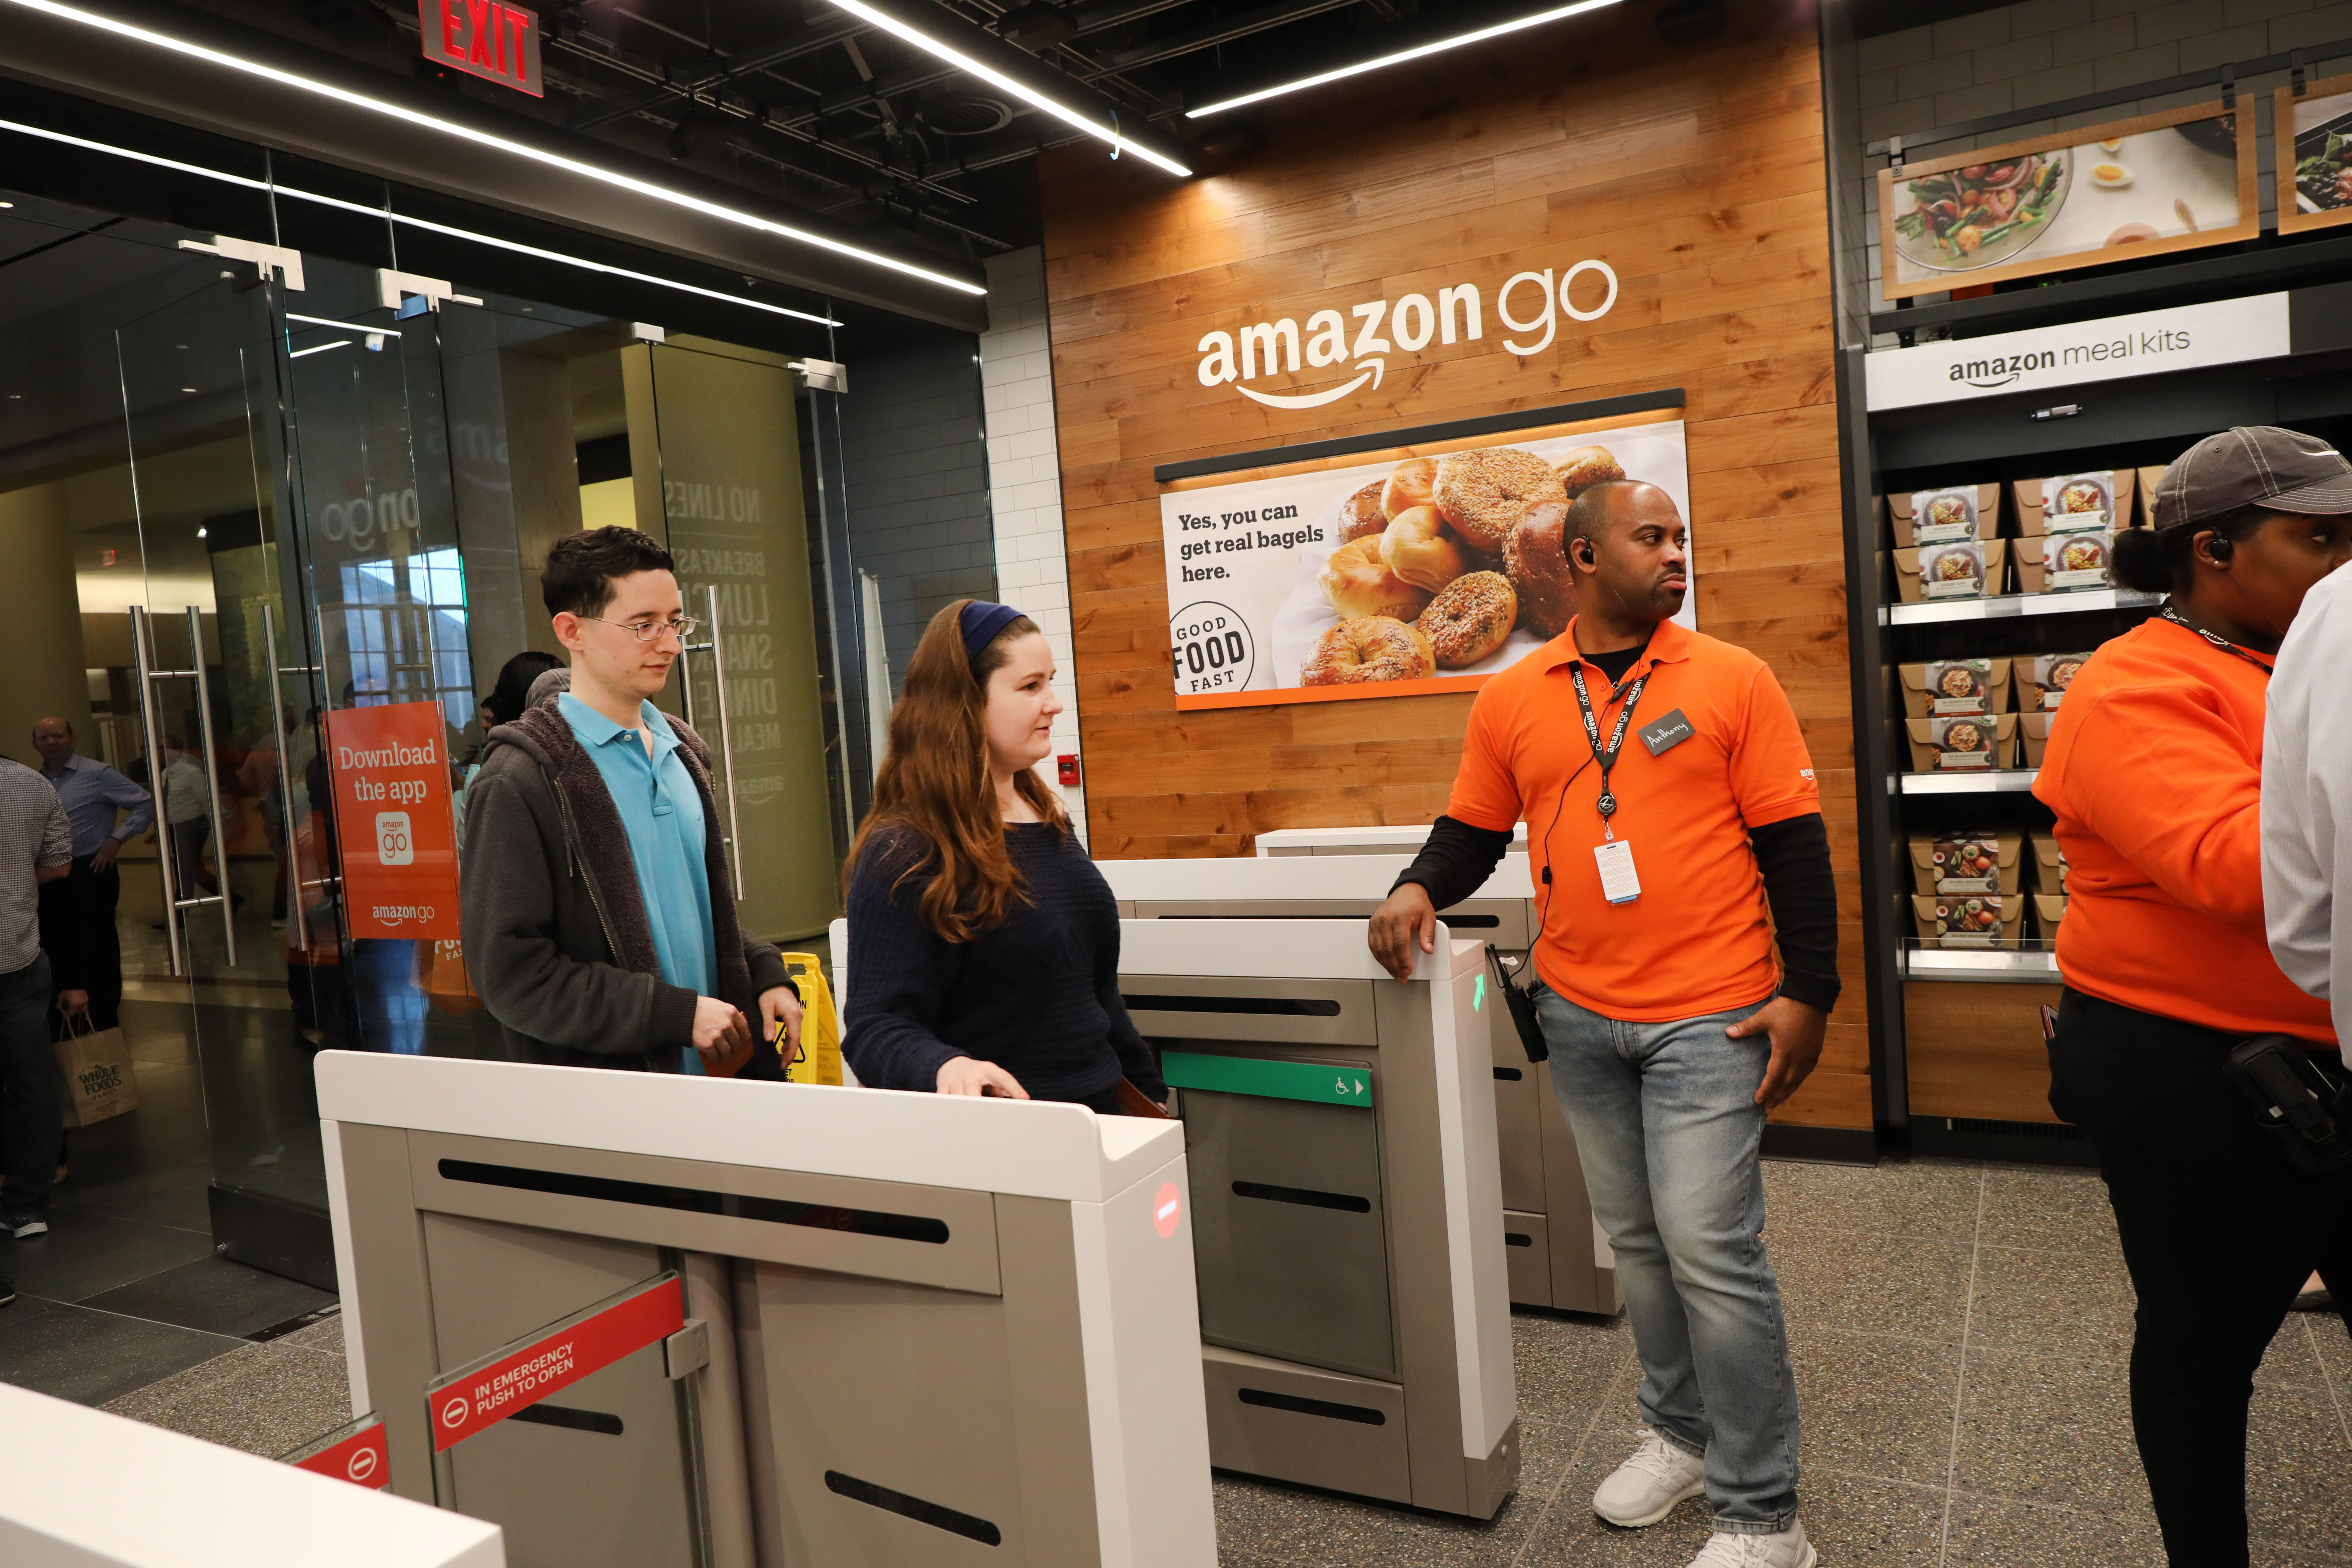 Amazon wants to patent technology that could identify shoppers by their hands